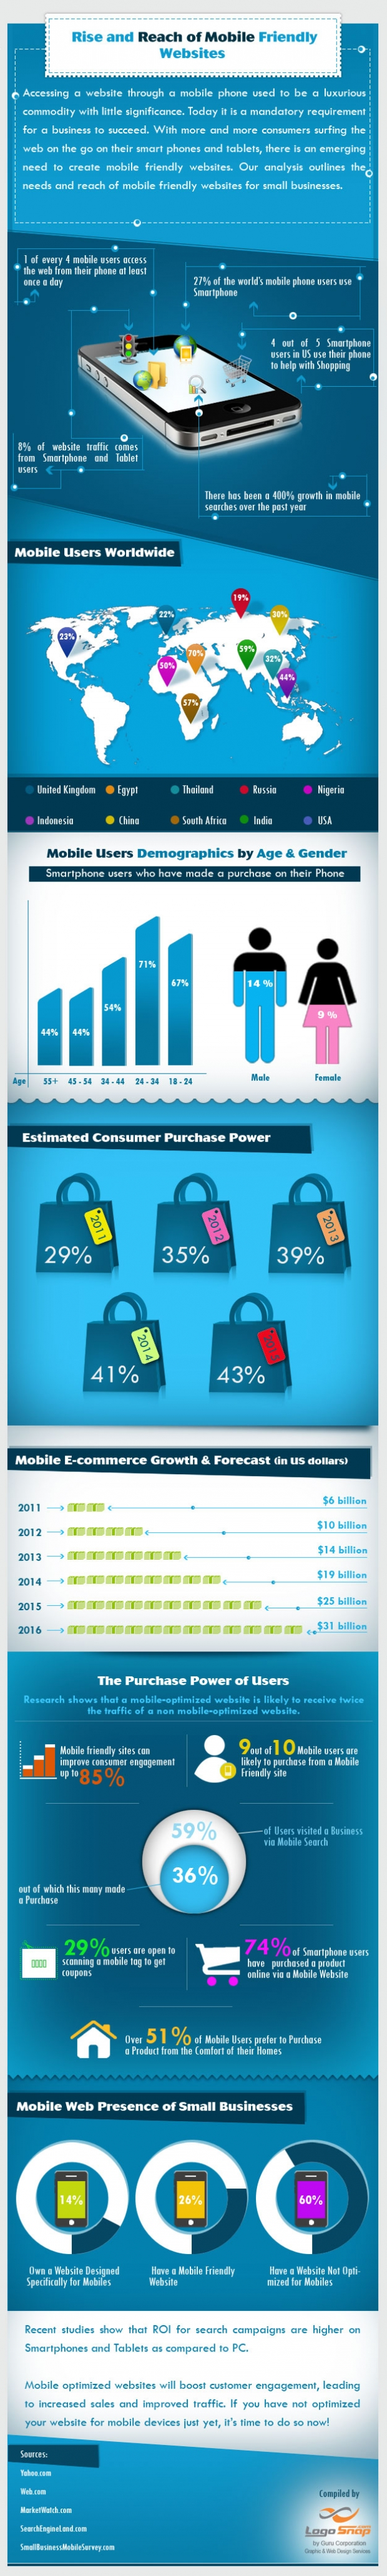 mobile-friendly-websites-infographic